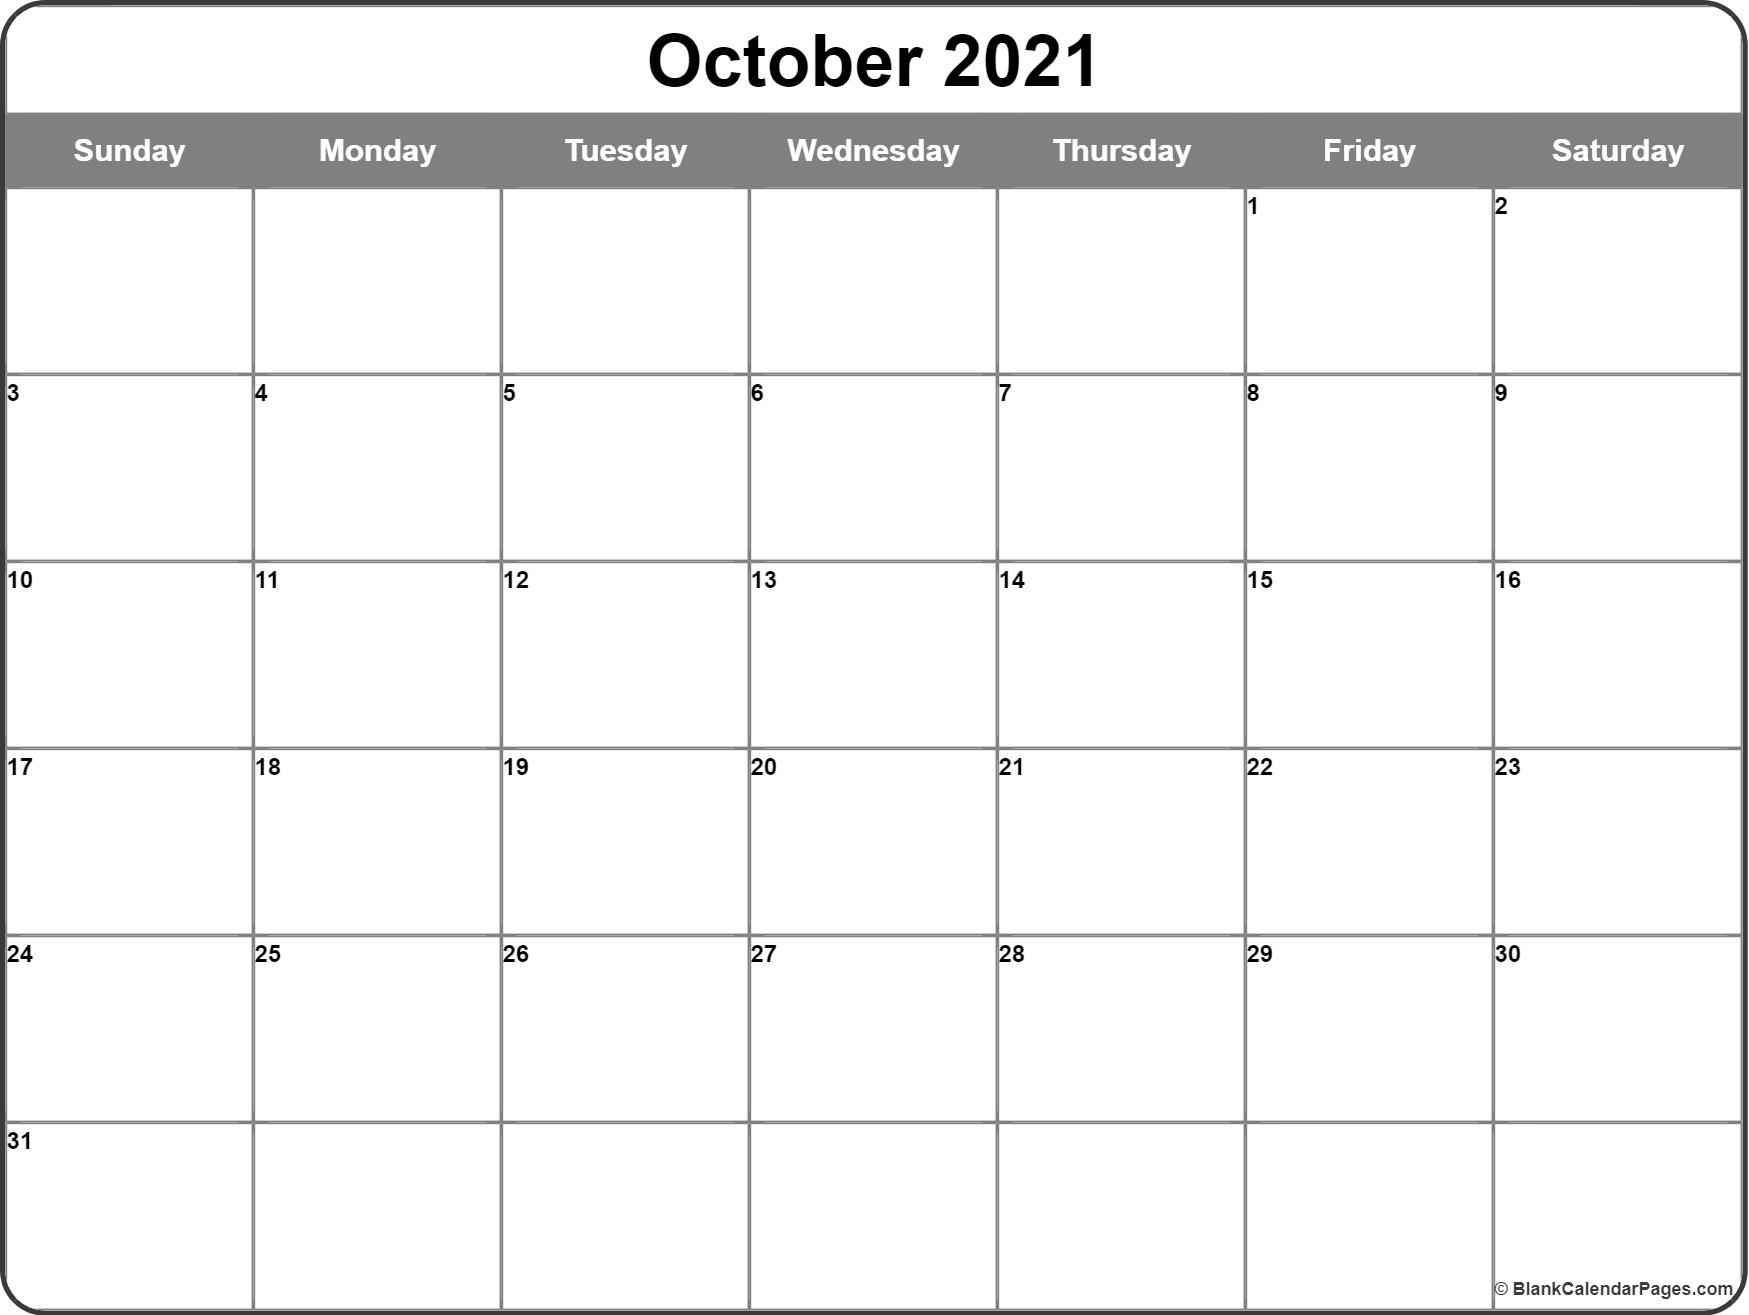 Calendar Templates October : October calendar printable template with holidays